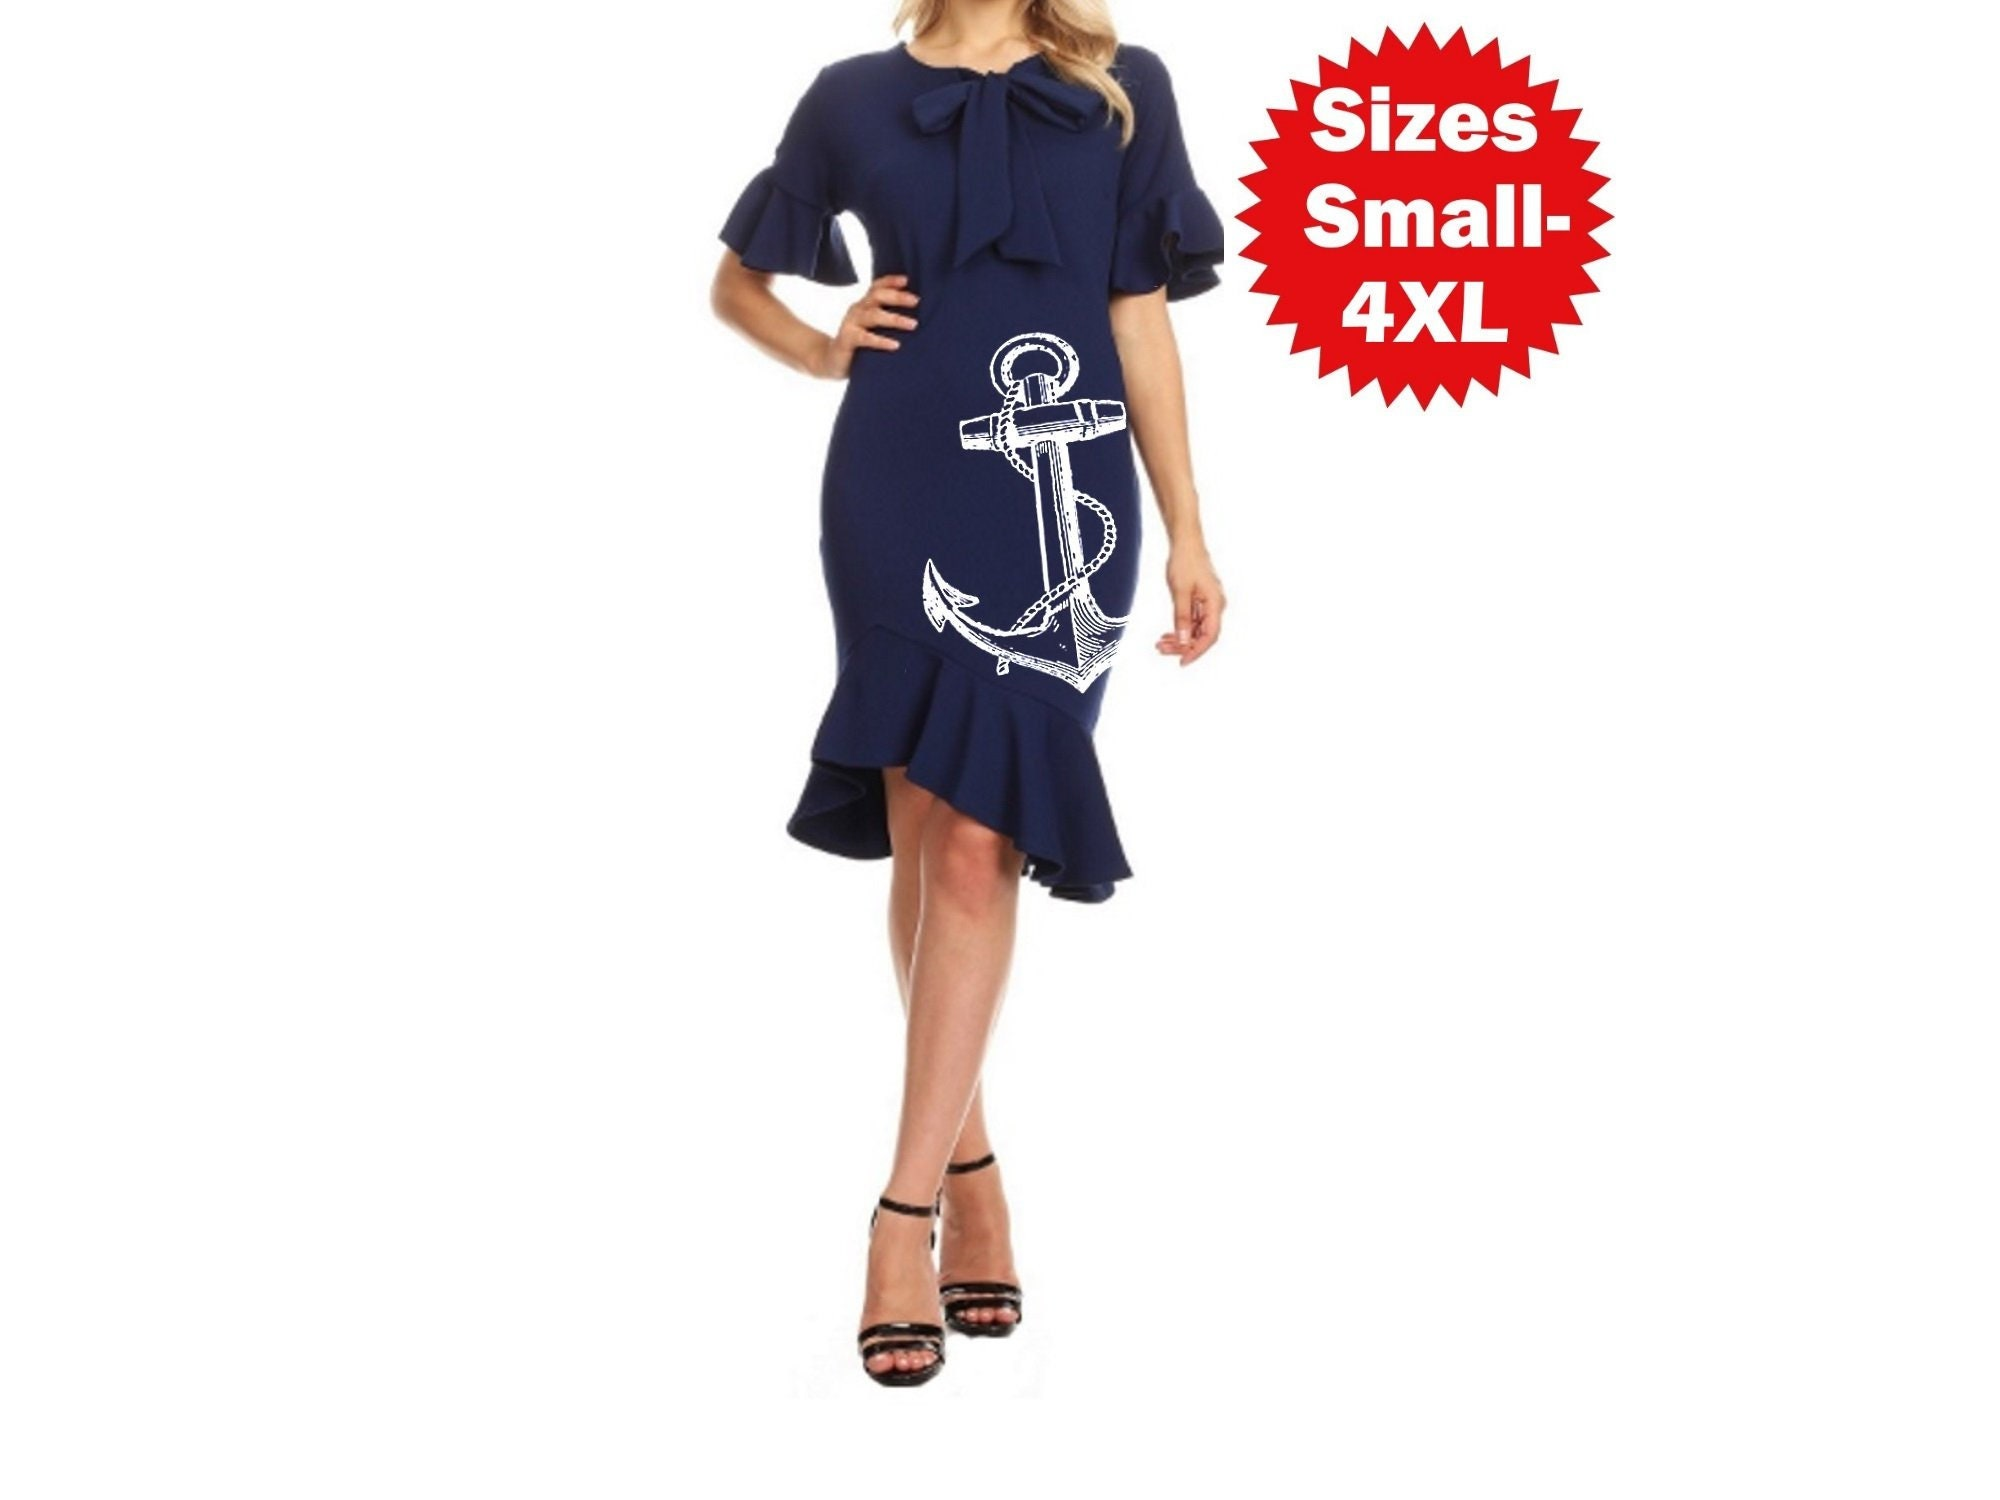 Nautical Anchor Dress Plus Size Clothing Sailor Rockabilly Dresses Pin up  Vintage Style Navy Anchors Mermaid hemline ruffle bell sleeves